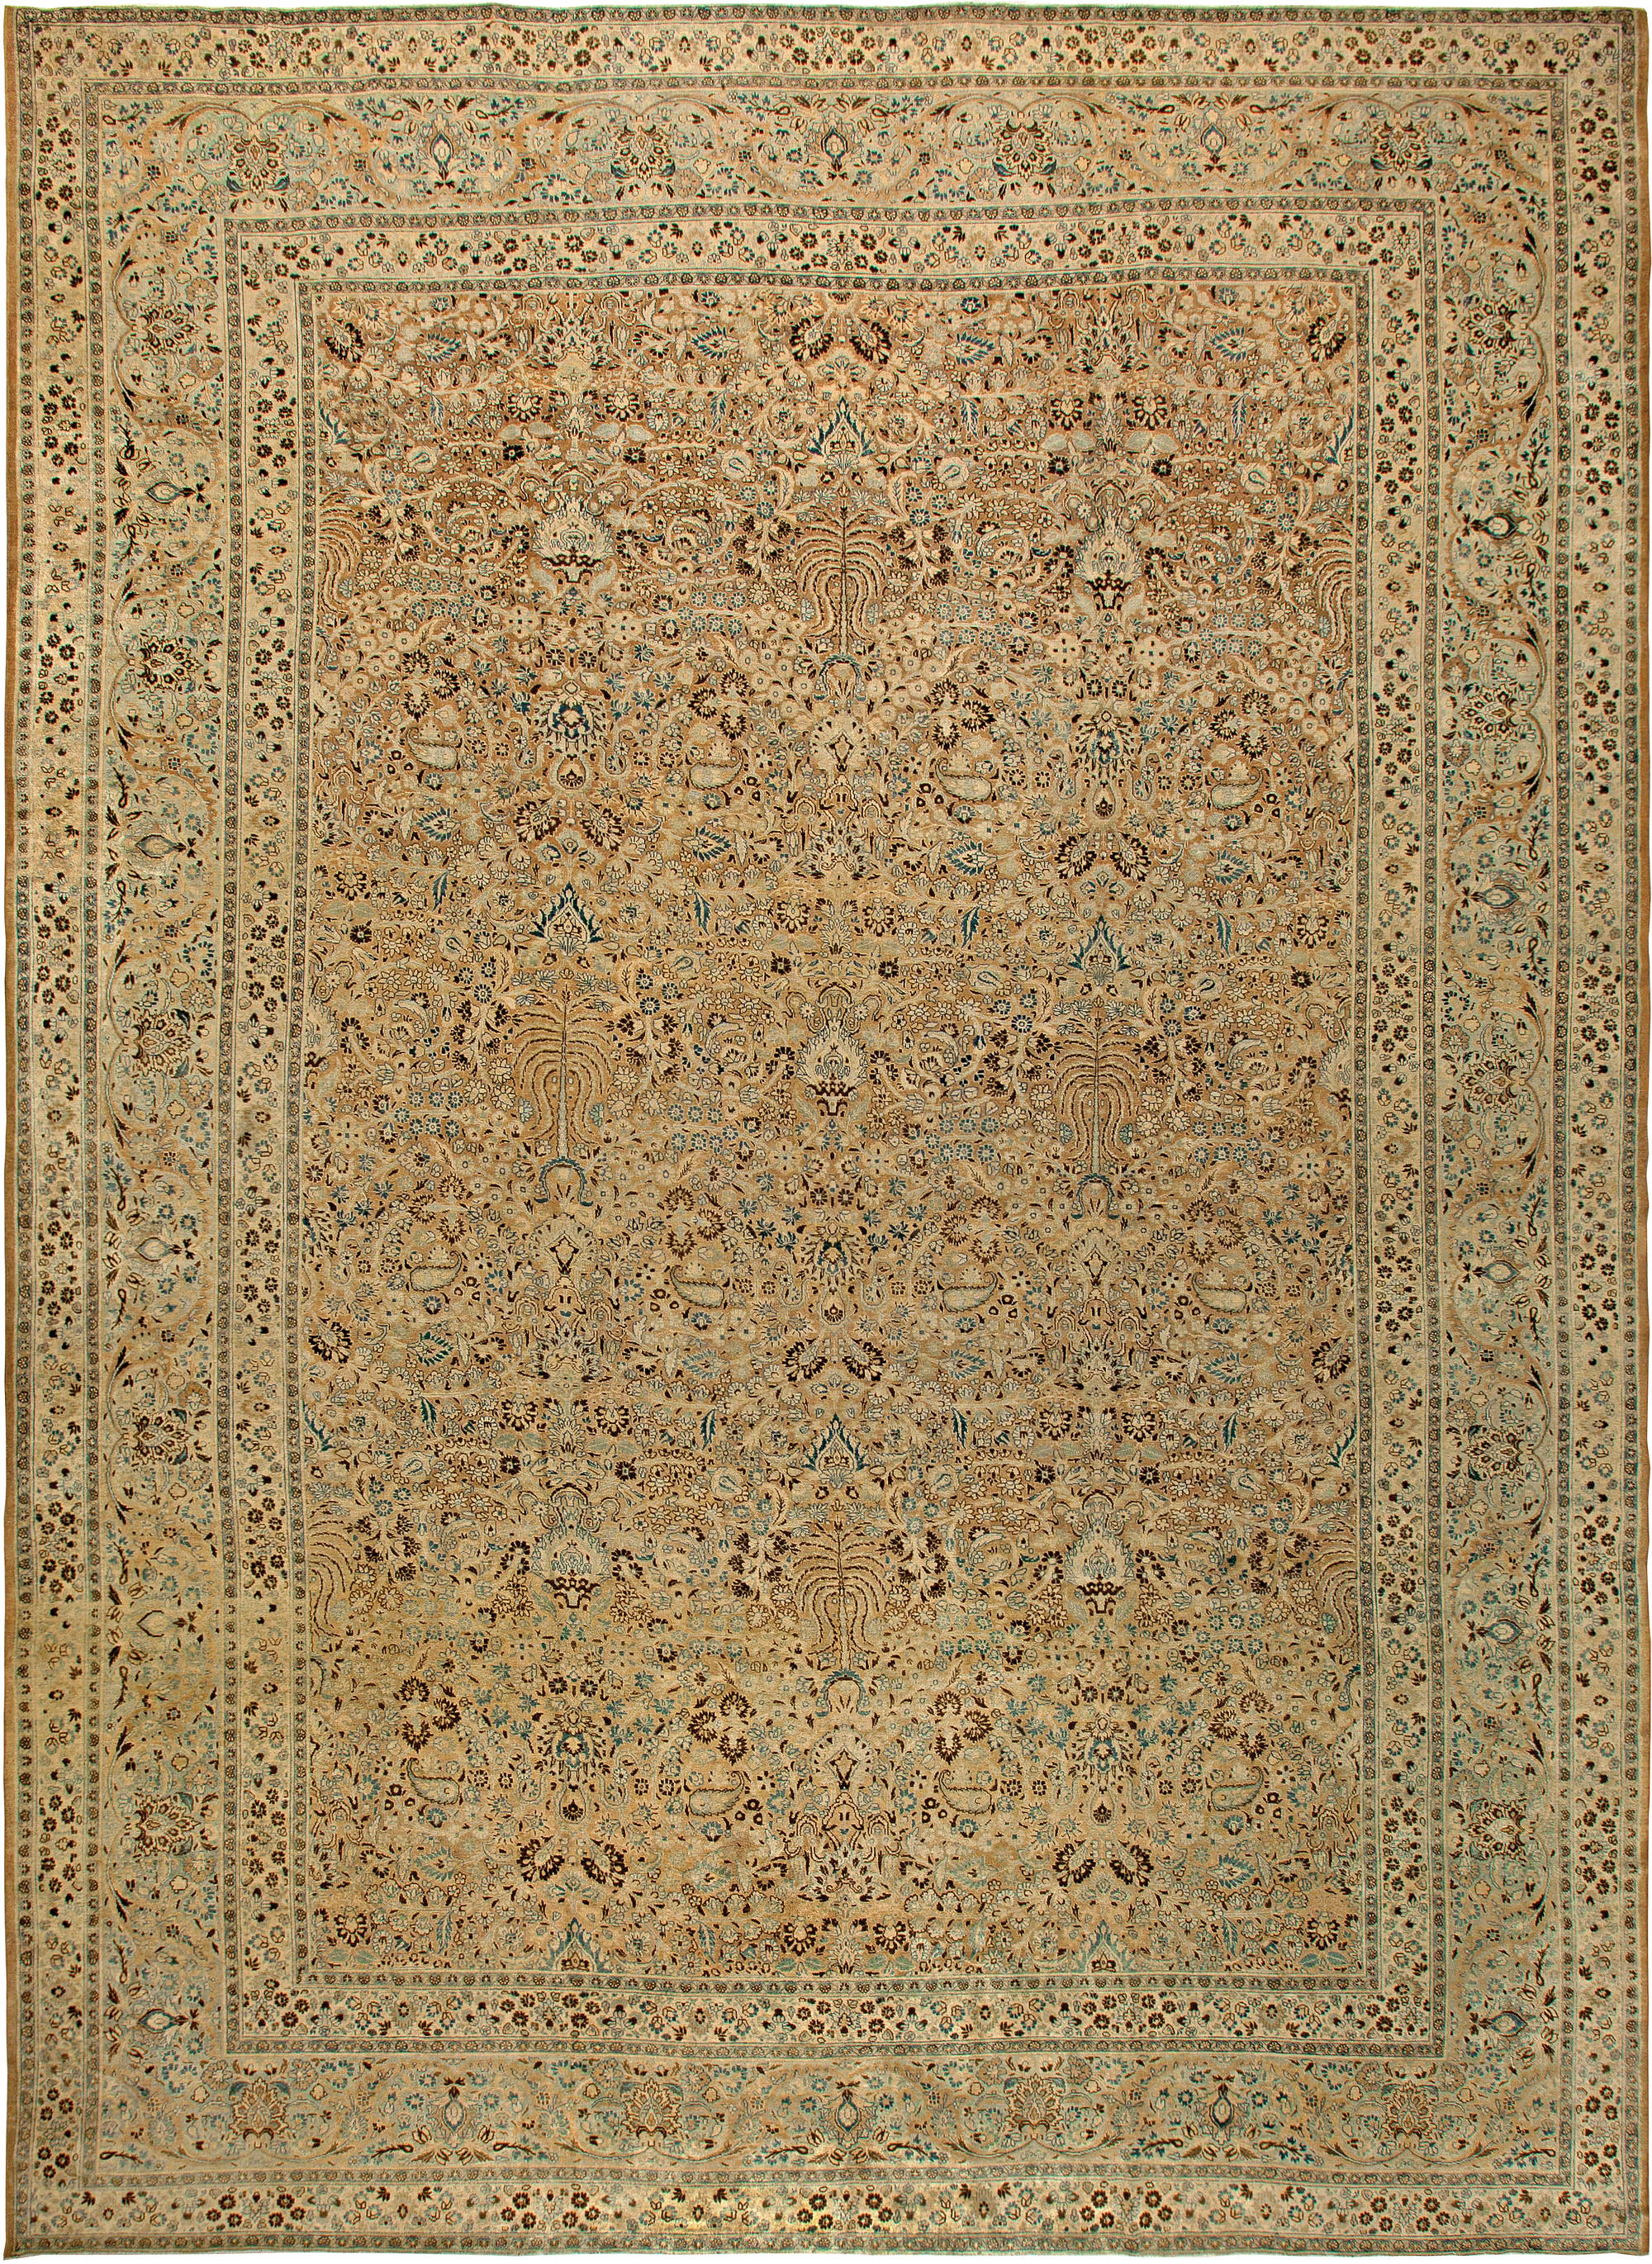 Oversized Antique Persian Khorassan Rug BB5814